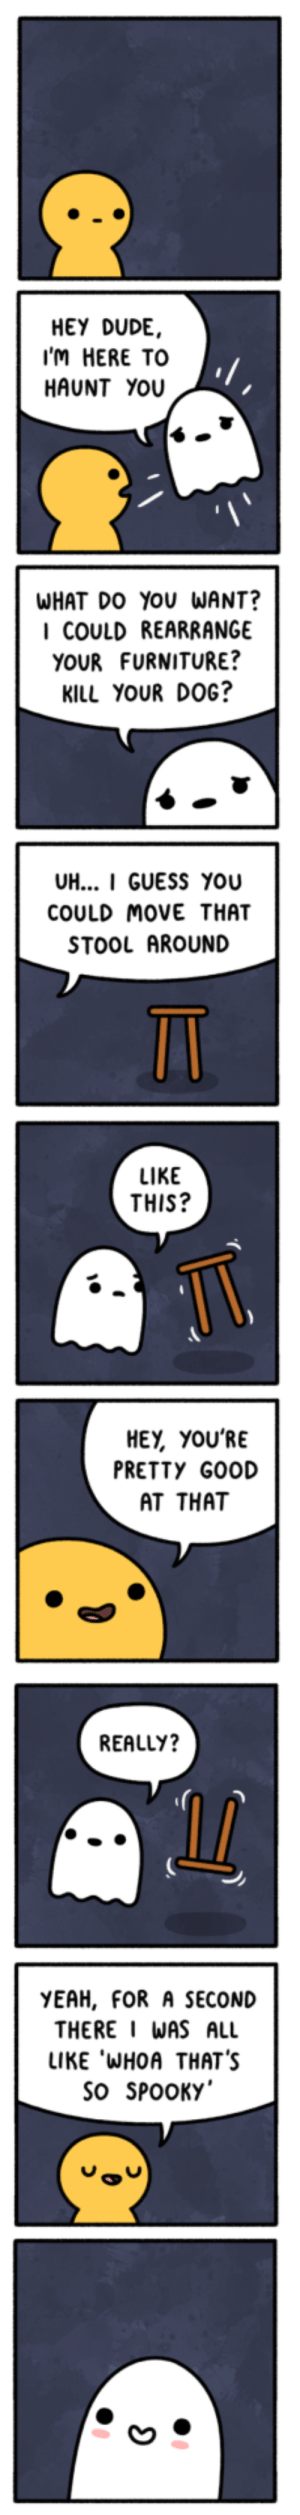 Wholesome ghost story: HEY DUDE,  I'M HERE TO  HAUNT YOU  WHAT DO YOU WANT?  I COULD REARRANGE  YOUR FURNITURE?  KILL YOUR DOG?  UH... I GUESS YOU  COULD MOVE THAT  STOOL AROUND  LIKE  THIS?  HEY, YOU'RE  PRETTY GOOD  AT THAT  REALLY?  YEAH, FOR A SECOND  THERE I WAS ALL  LIKE·WHOA THAT'S  SO SPOOKY Wholesome ghost story